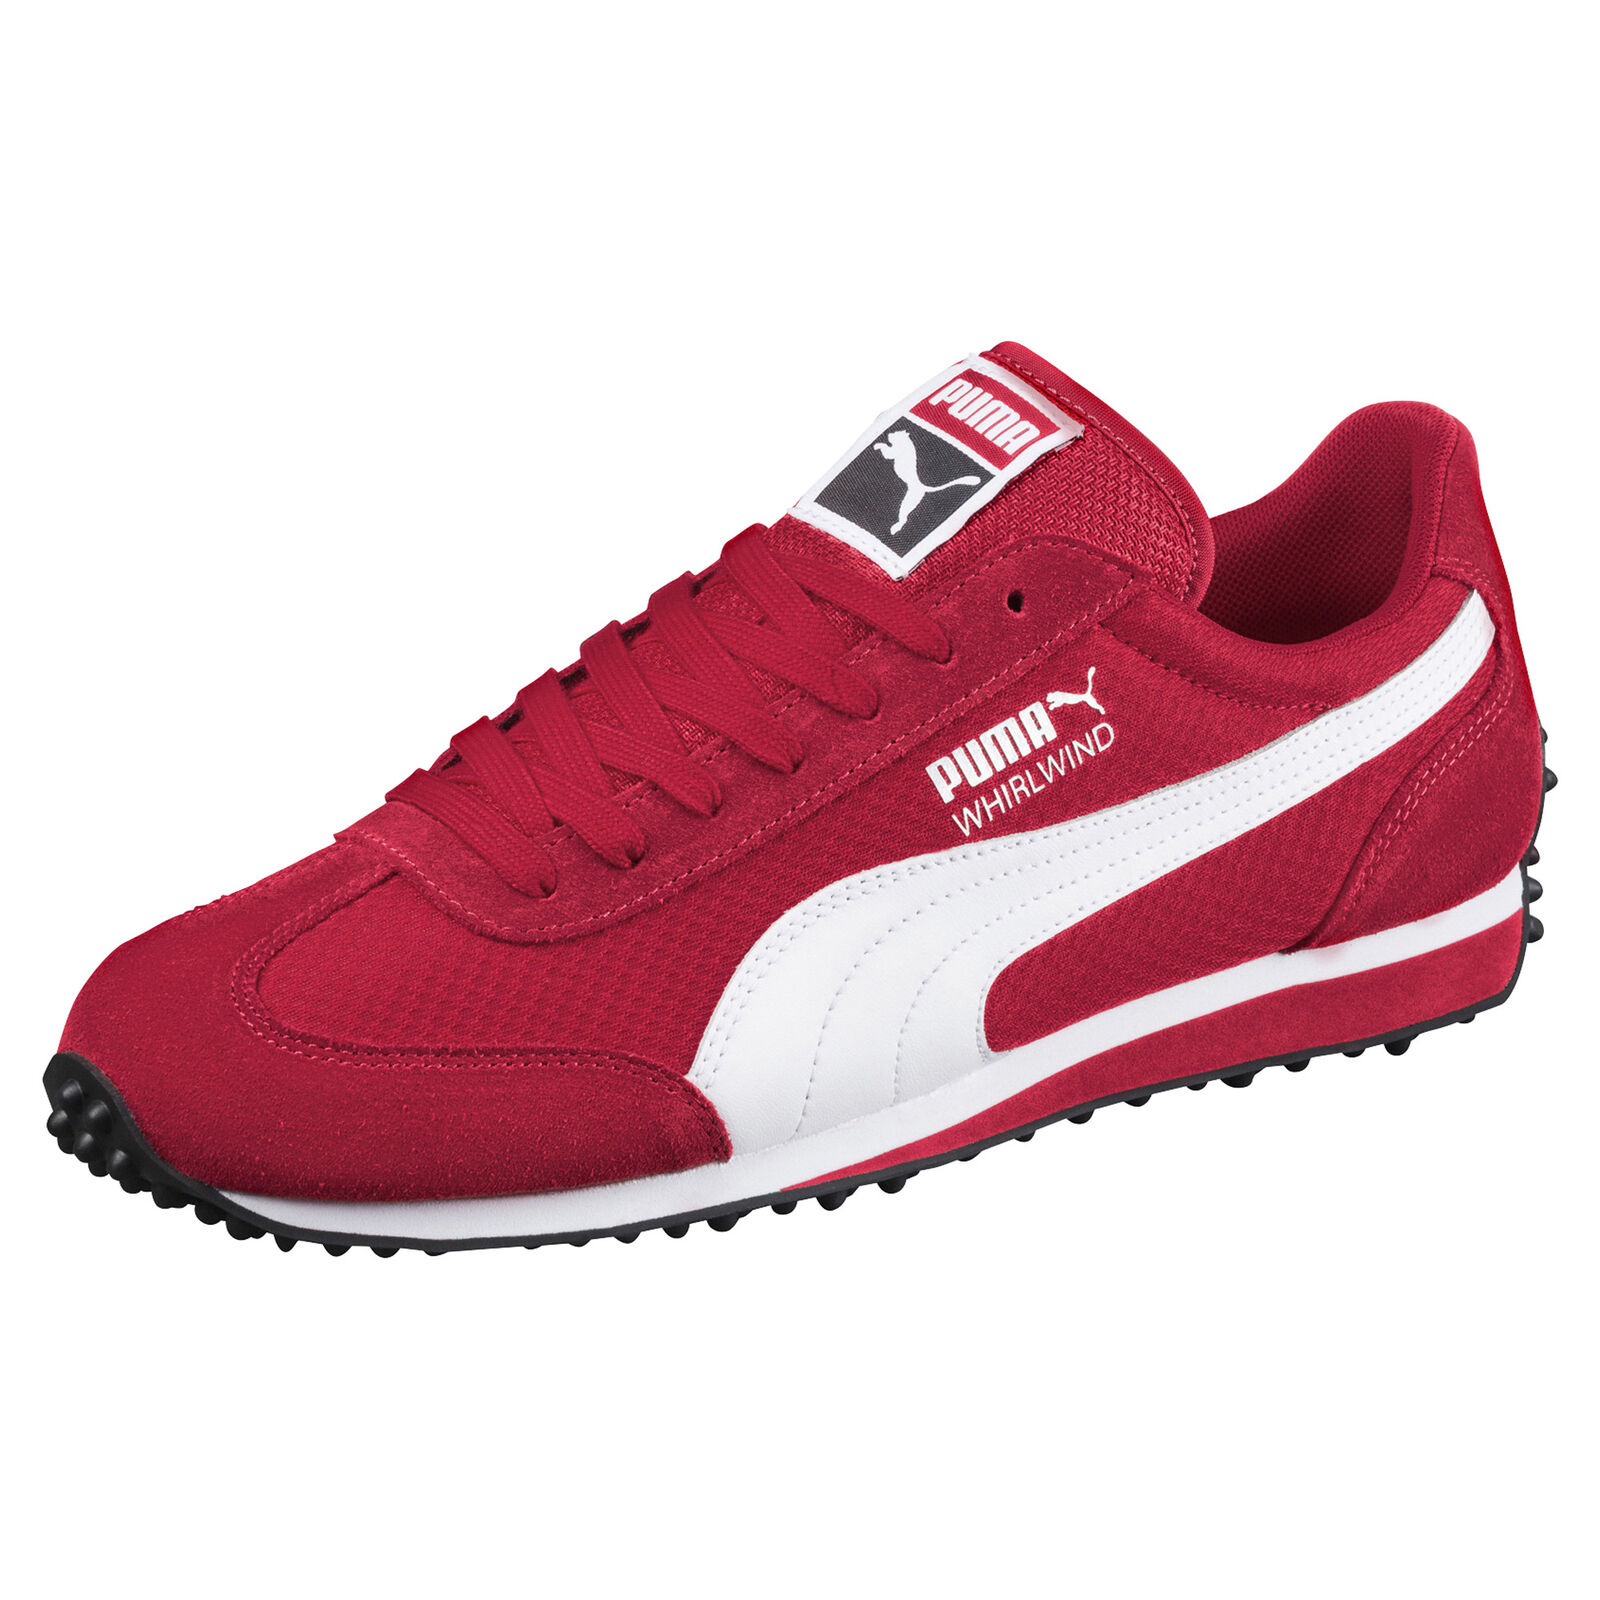 Puma Whirlwind Men's shoes Sneakers Red 36378703